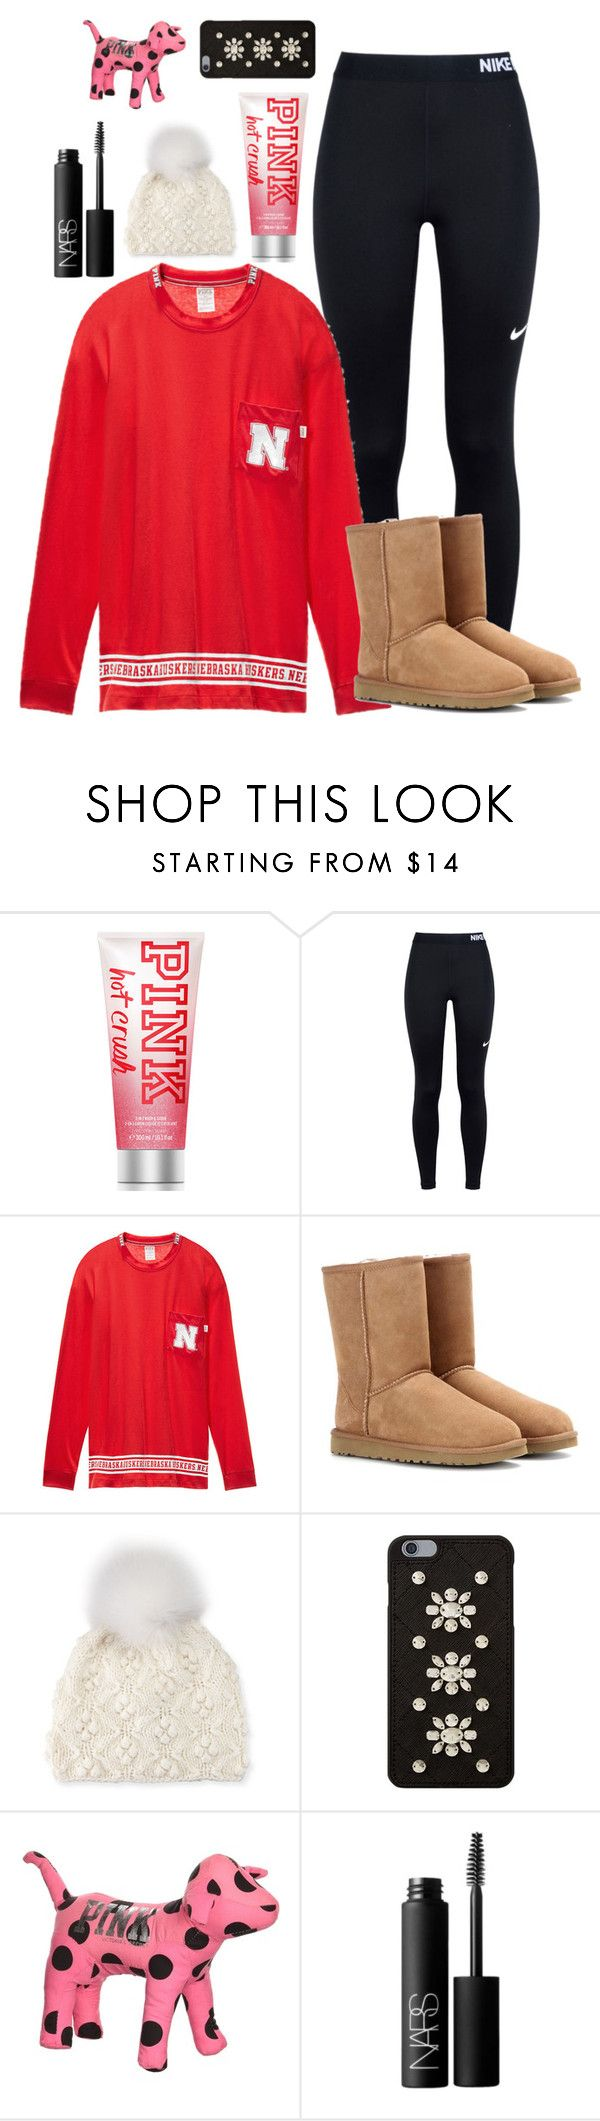 Yay!! NE Won Again in Volleyball by labures on Polyvore featuring Victorias Secret, NIKE, UGG Australia, Il Borgo, MICHAEL Michael Kors and NARS Cosmetics